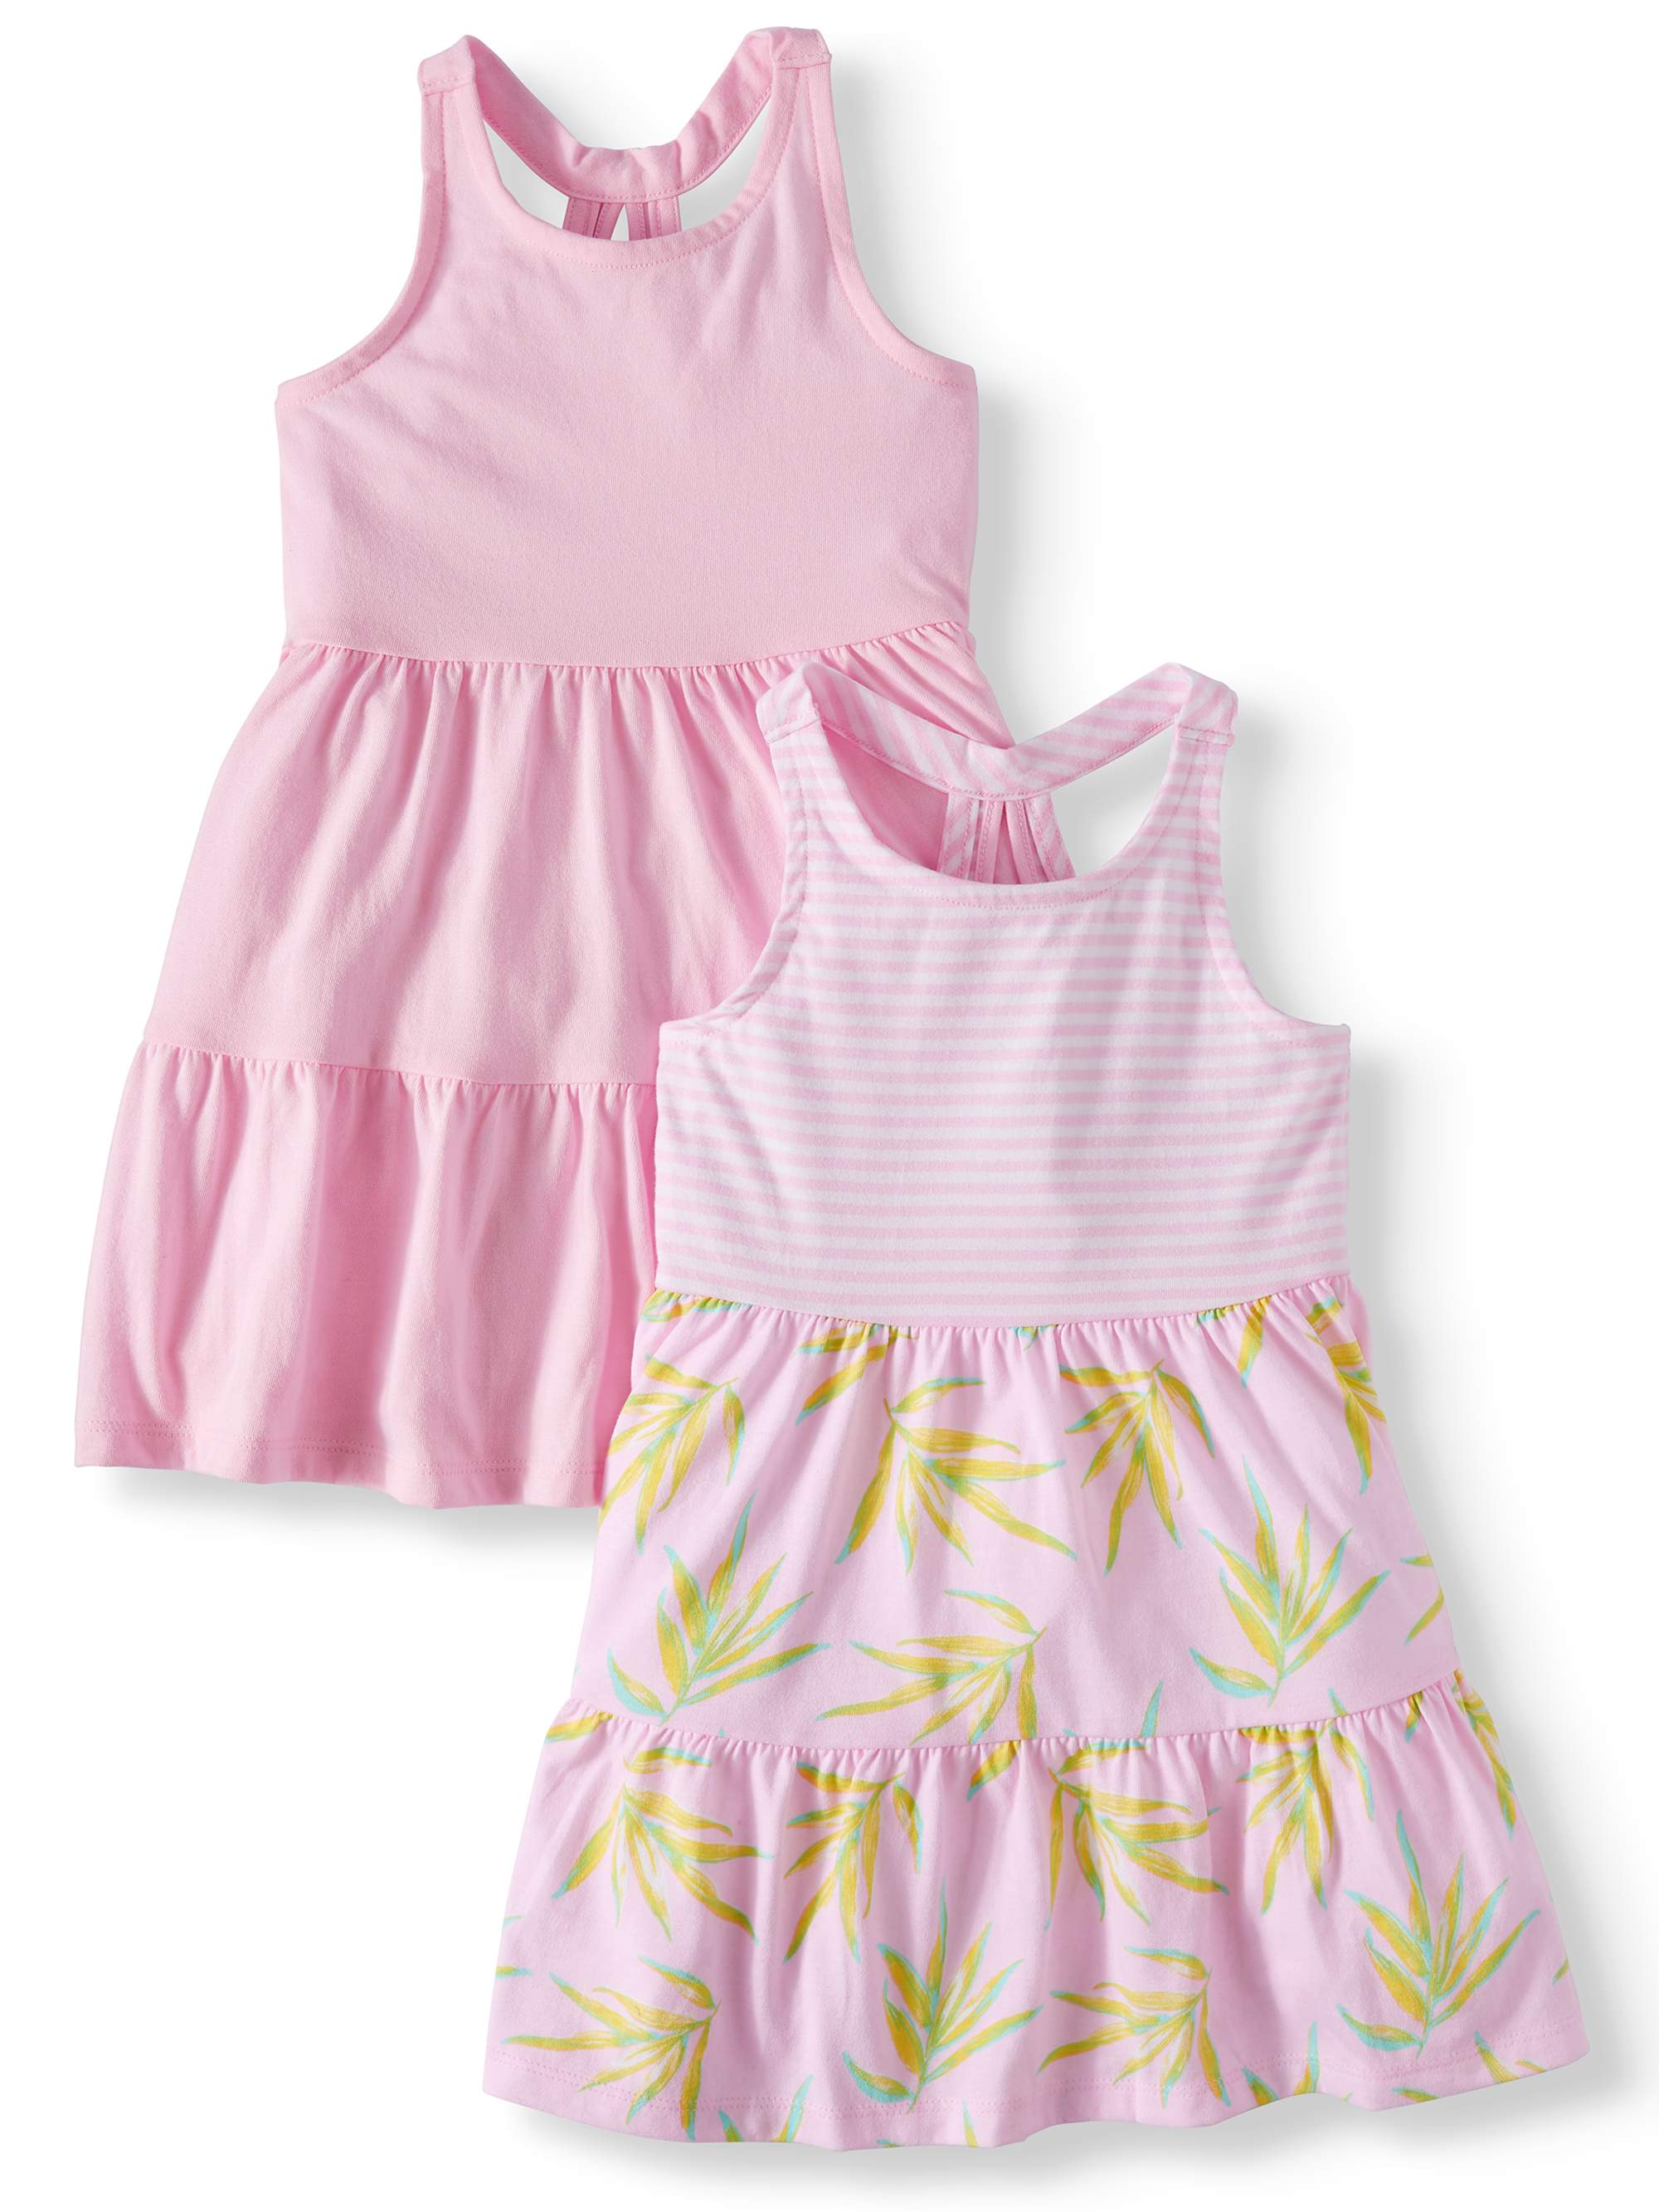 Racerback Printed and Solid Dresses, 2-pack (Toddler Girls)